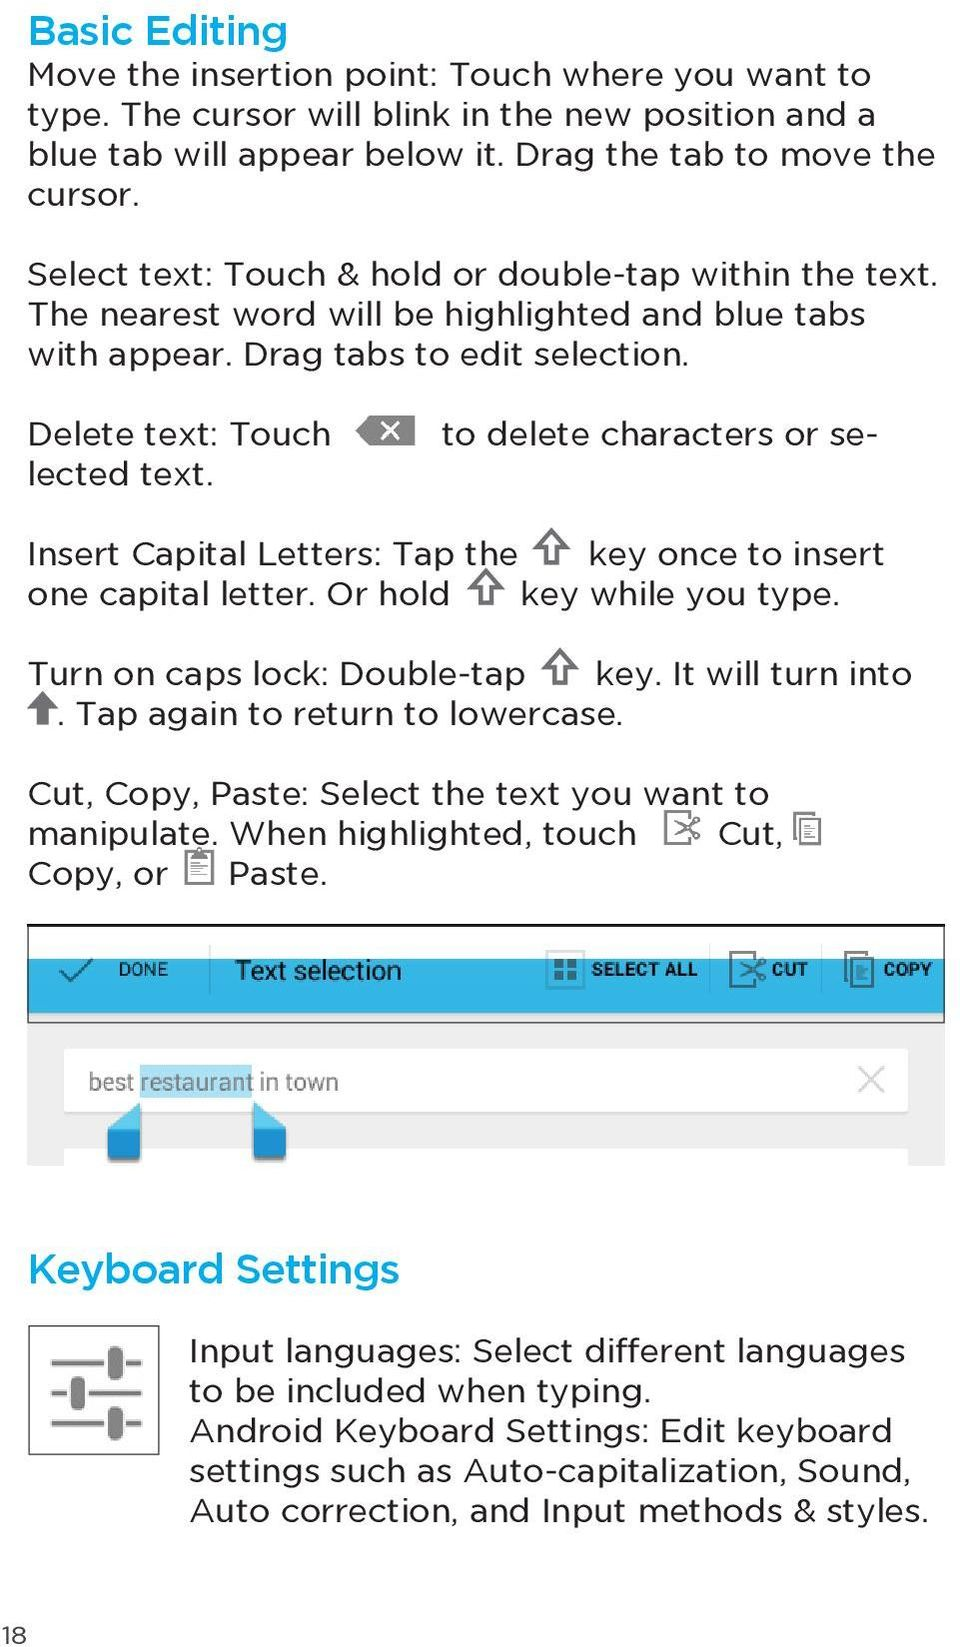 to delete characters or se- Delete text: Touch lected text. Insert Capital Letters: Tap the key once to insert one capital letter. Or hold key while you type. Turn on caps lock: Double-tap key.